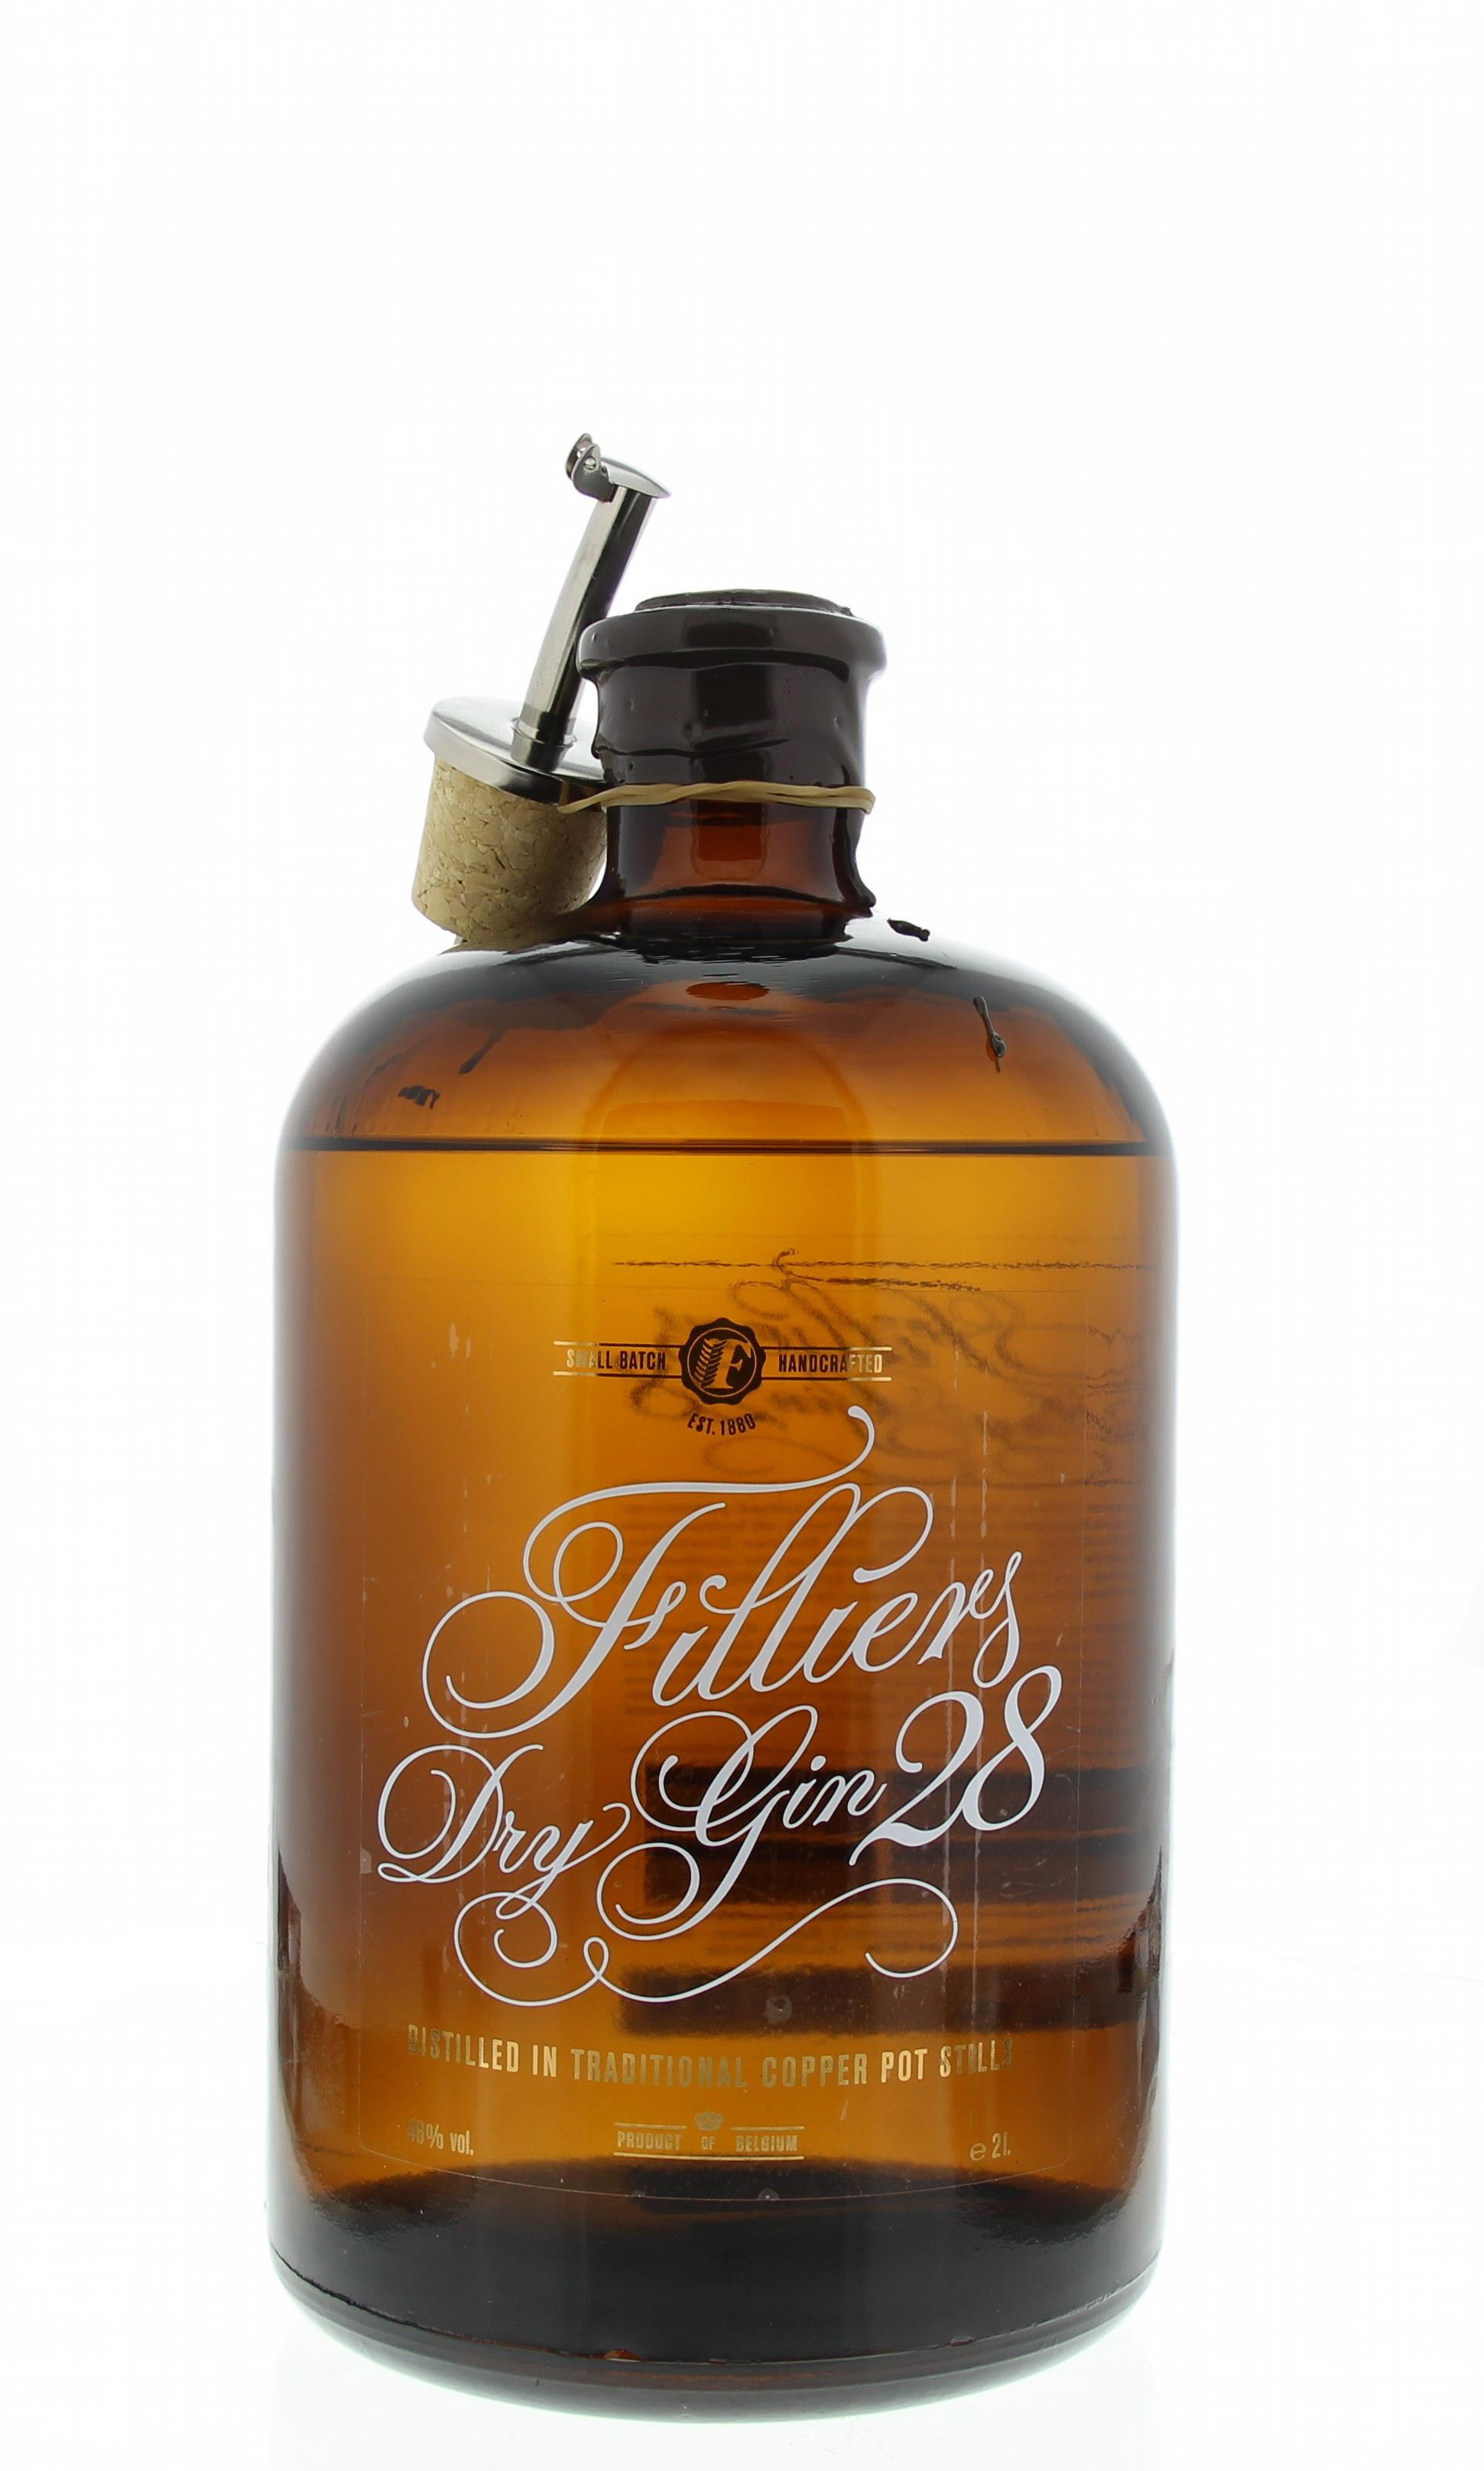 Filliers Dry Gin 28 46° 2L